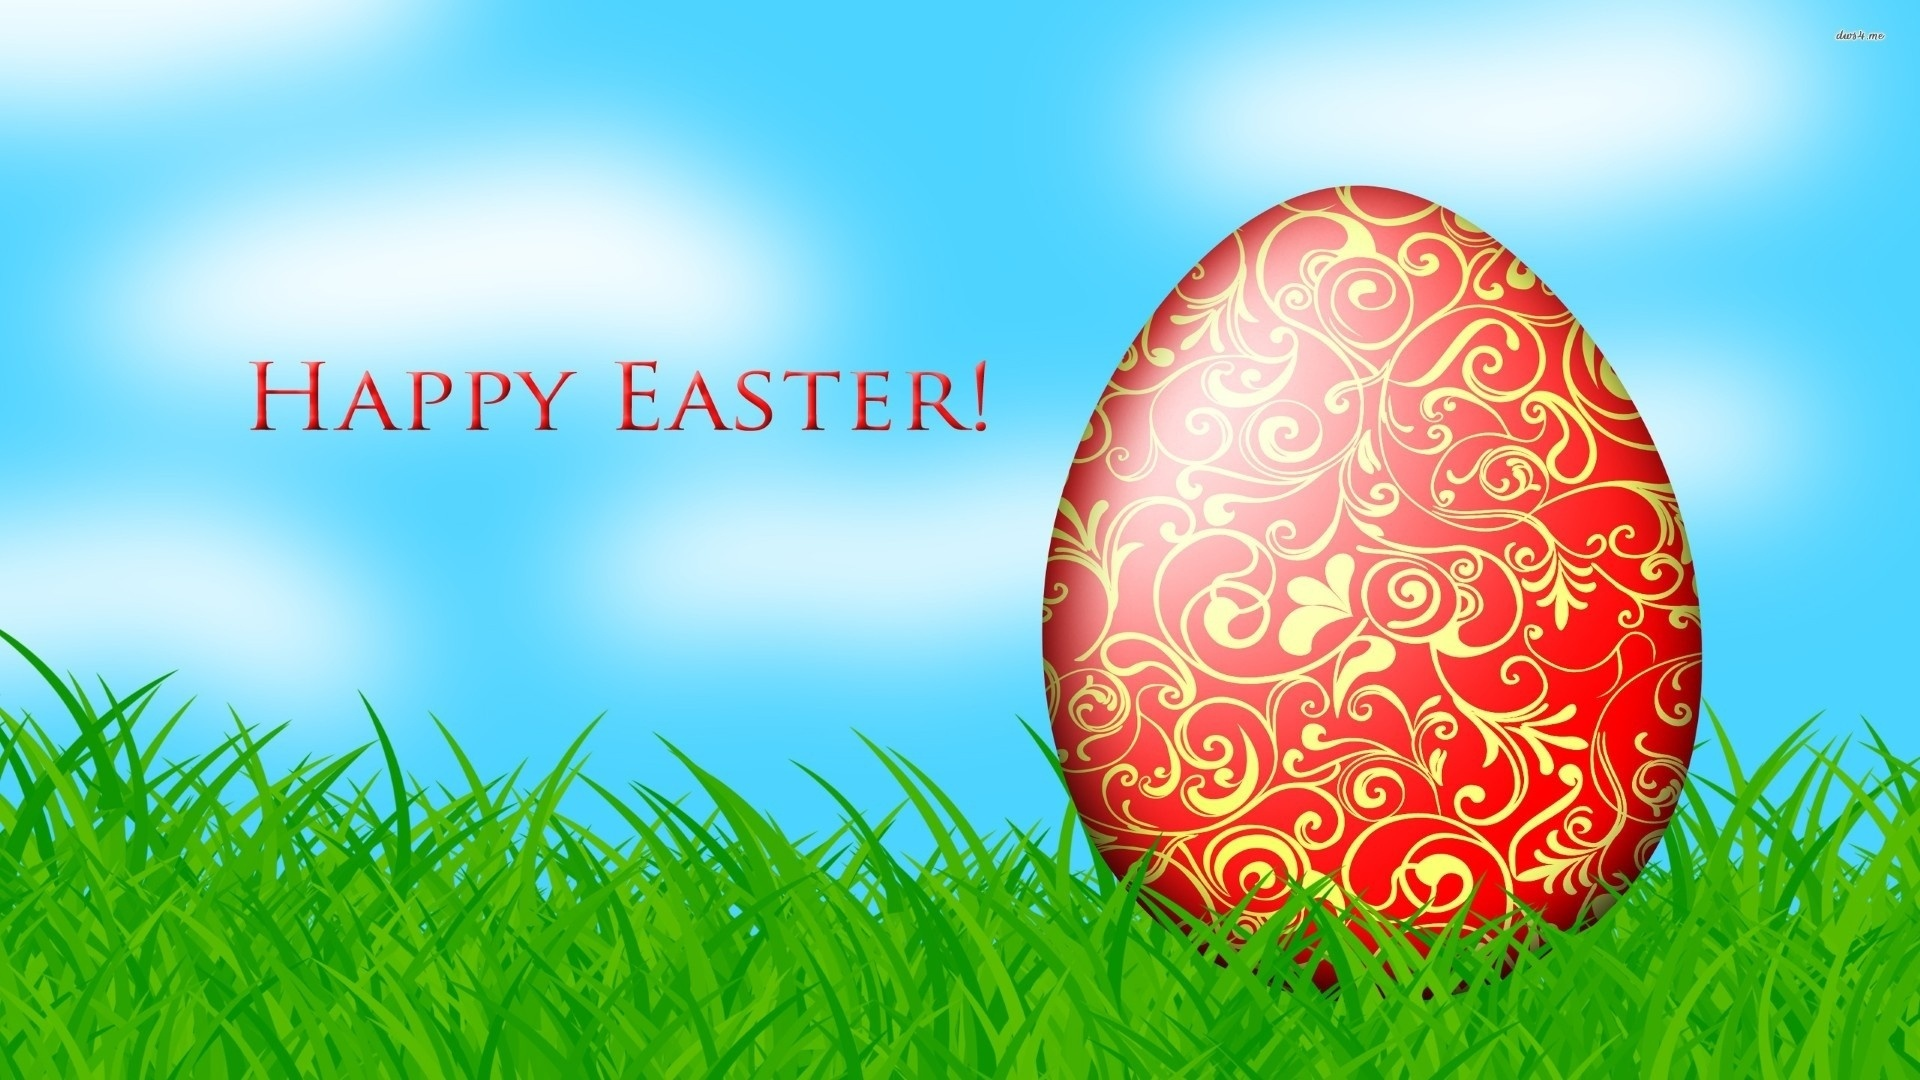 Happy Easter wallpaper for computer